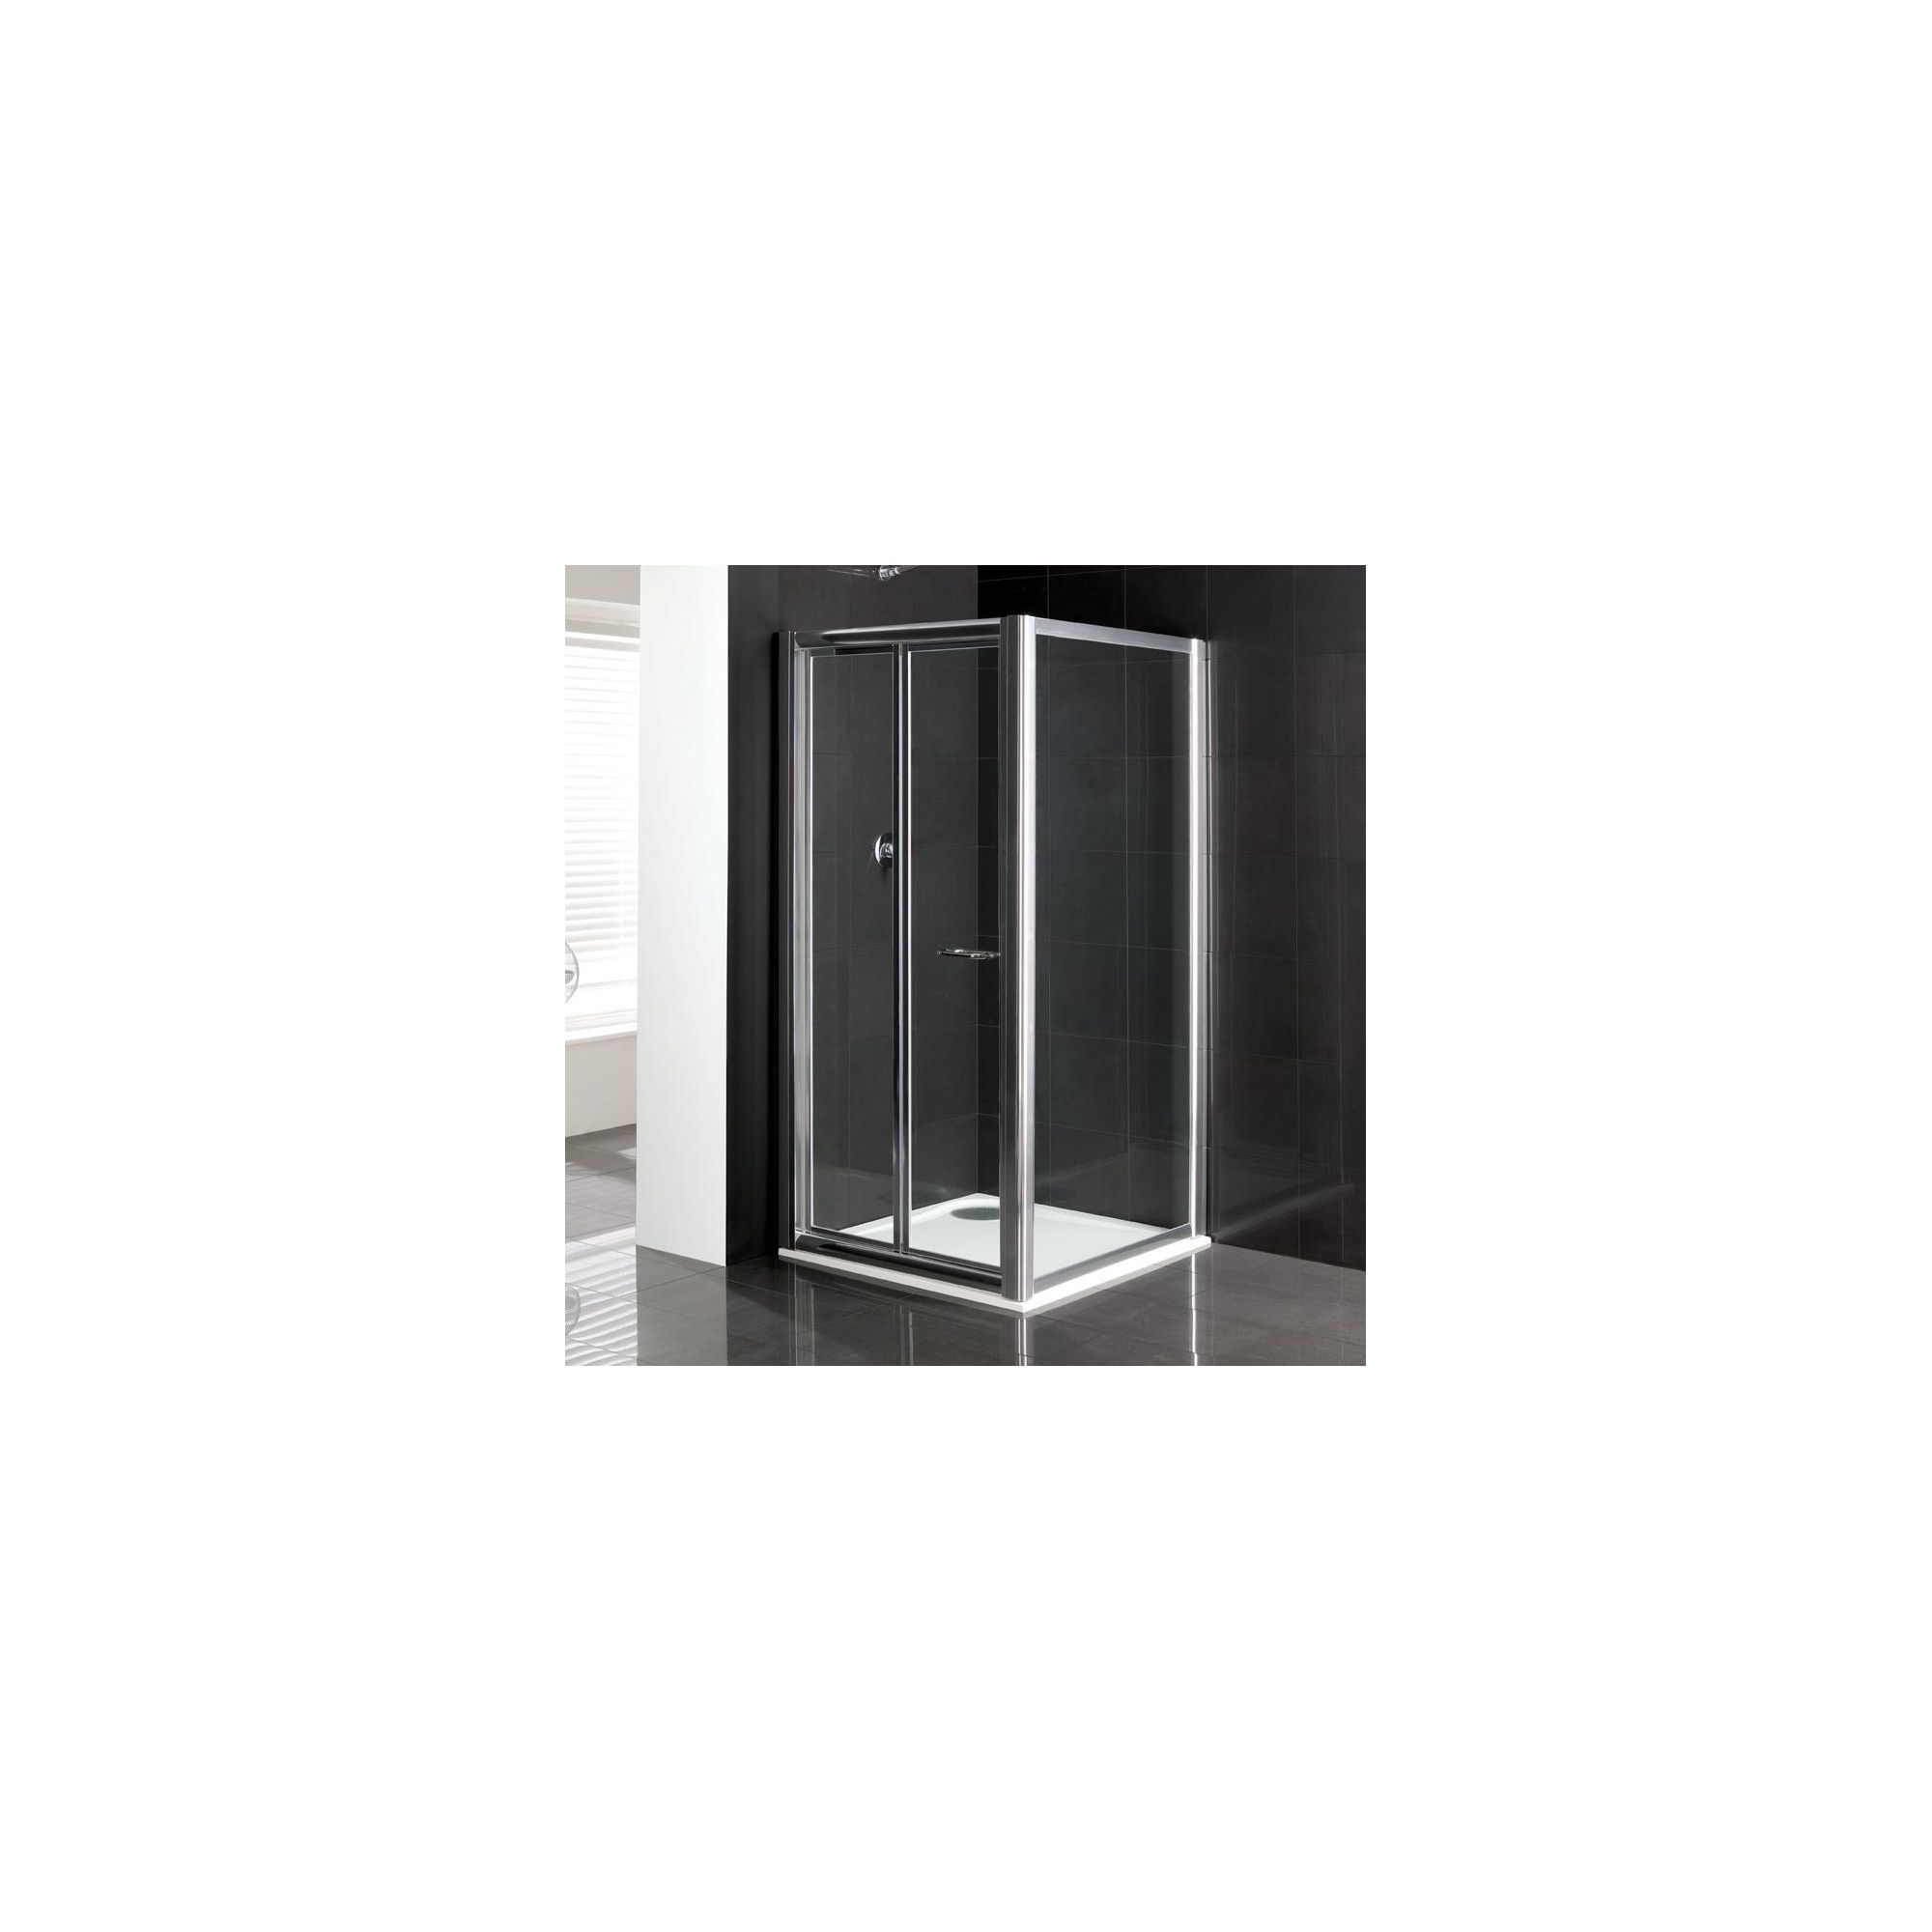 Duchy Elite Silver Bi-Fold Door Shower Enclosure with Towel Rail, 900mm x 700mm, Standard Tray, 6mm Glass at Tesco Direct